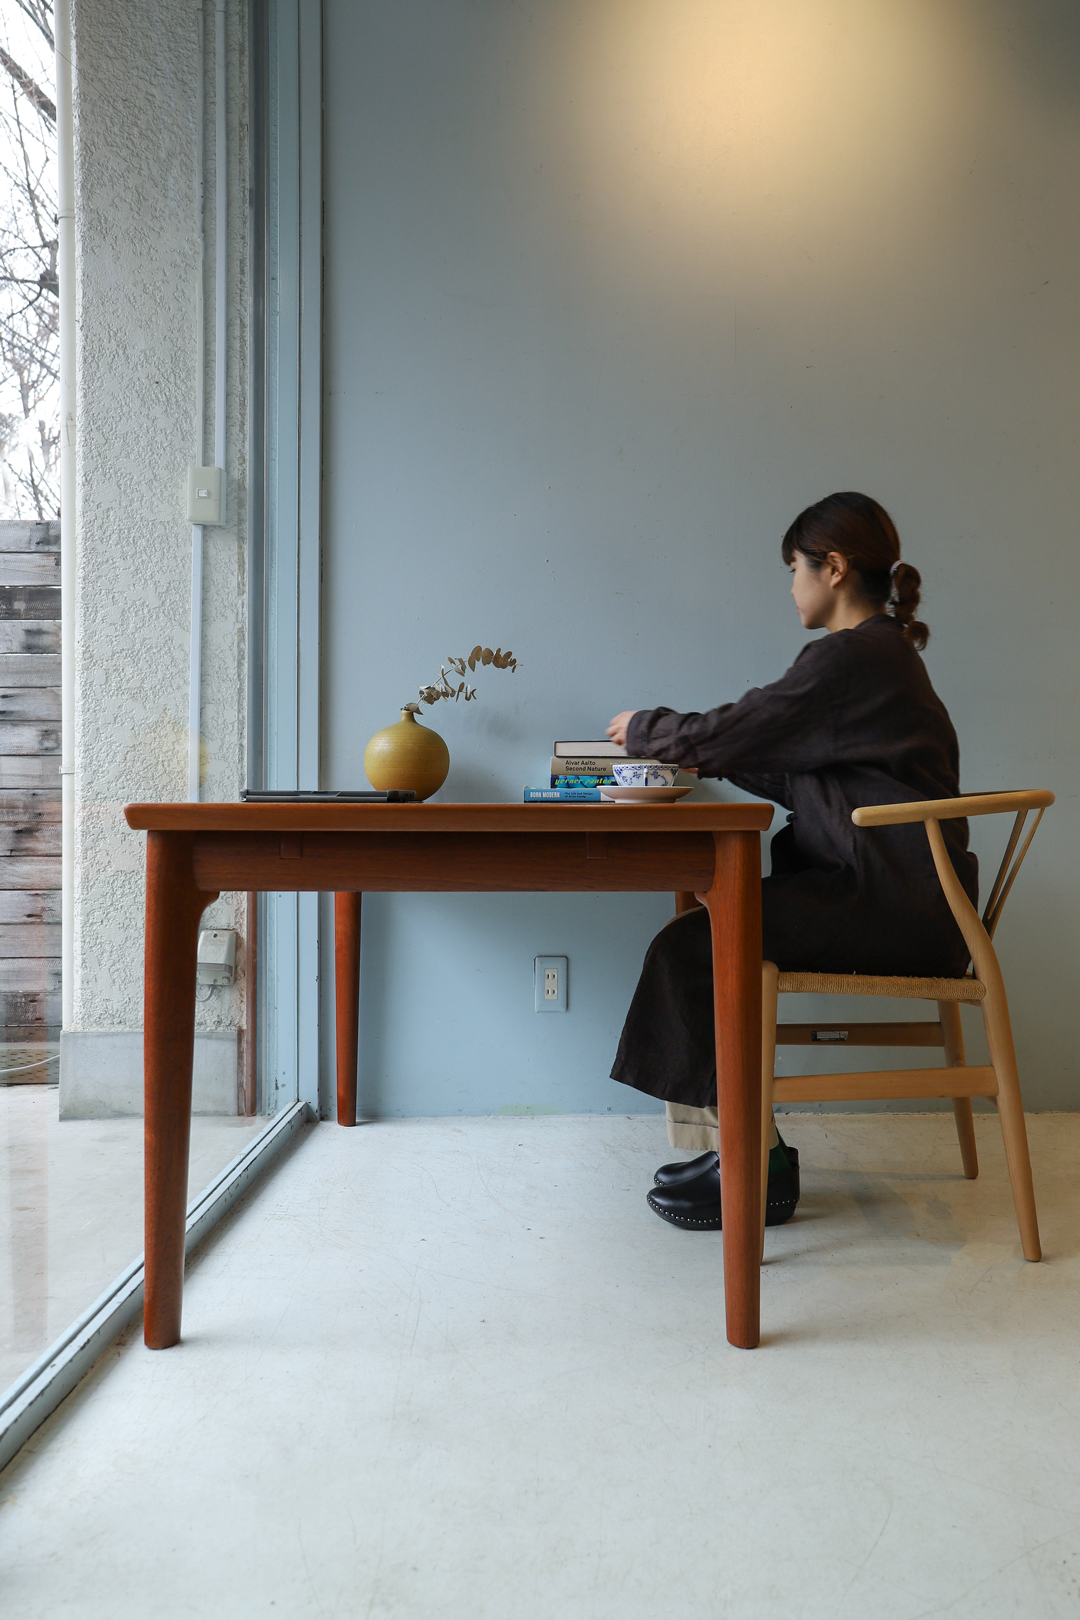 Glostrup Møbelfabrik Extension Dining Table Grete Jalk/デンマークヴィンテージ エクステンションダイニングテーブル グレーテ・ヤルク チーク材 北欧家具